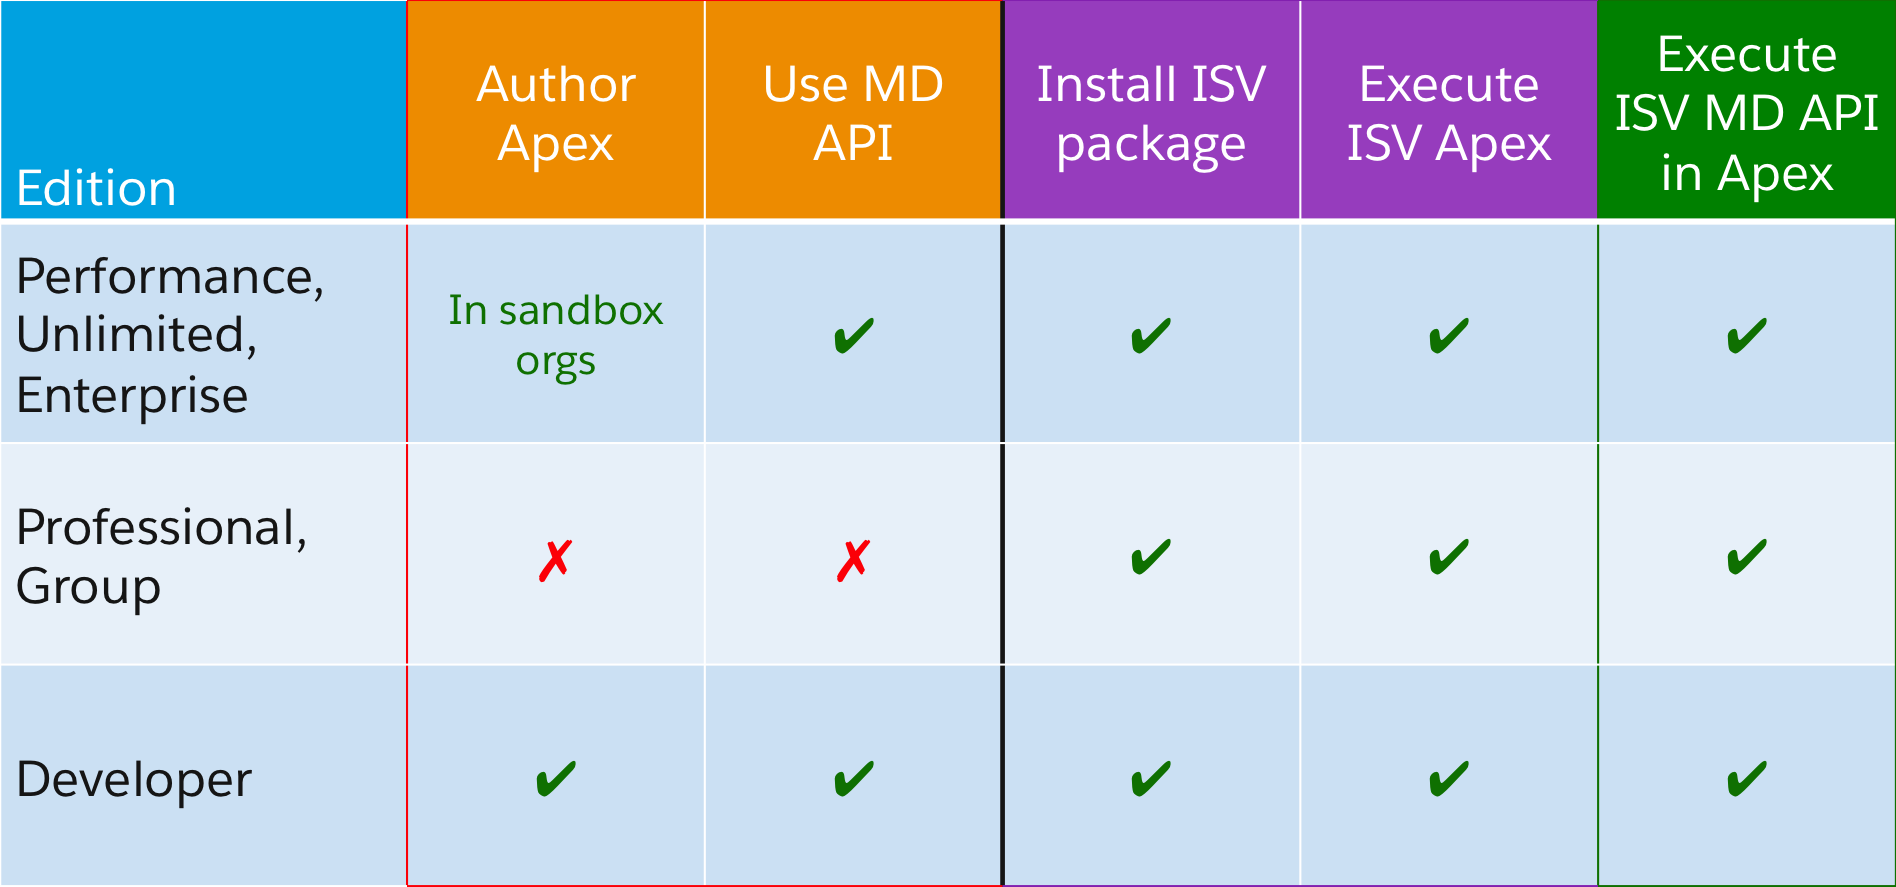 Apex Metadata API can be used in all editions that can install ISV packages